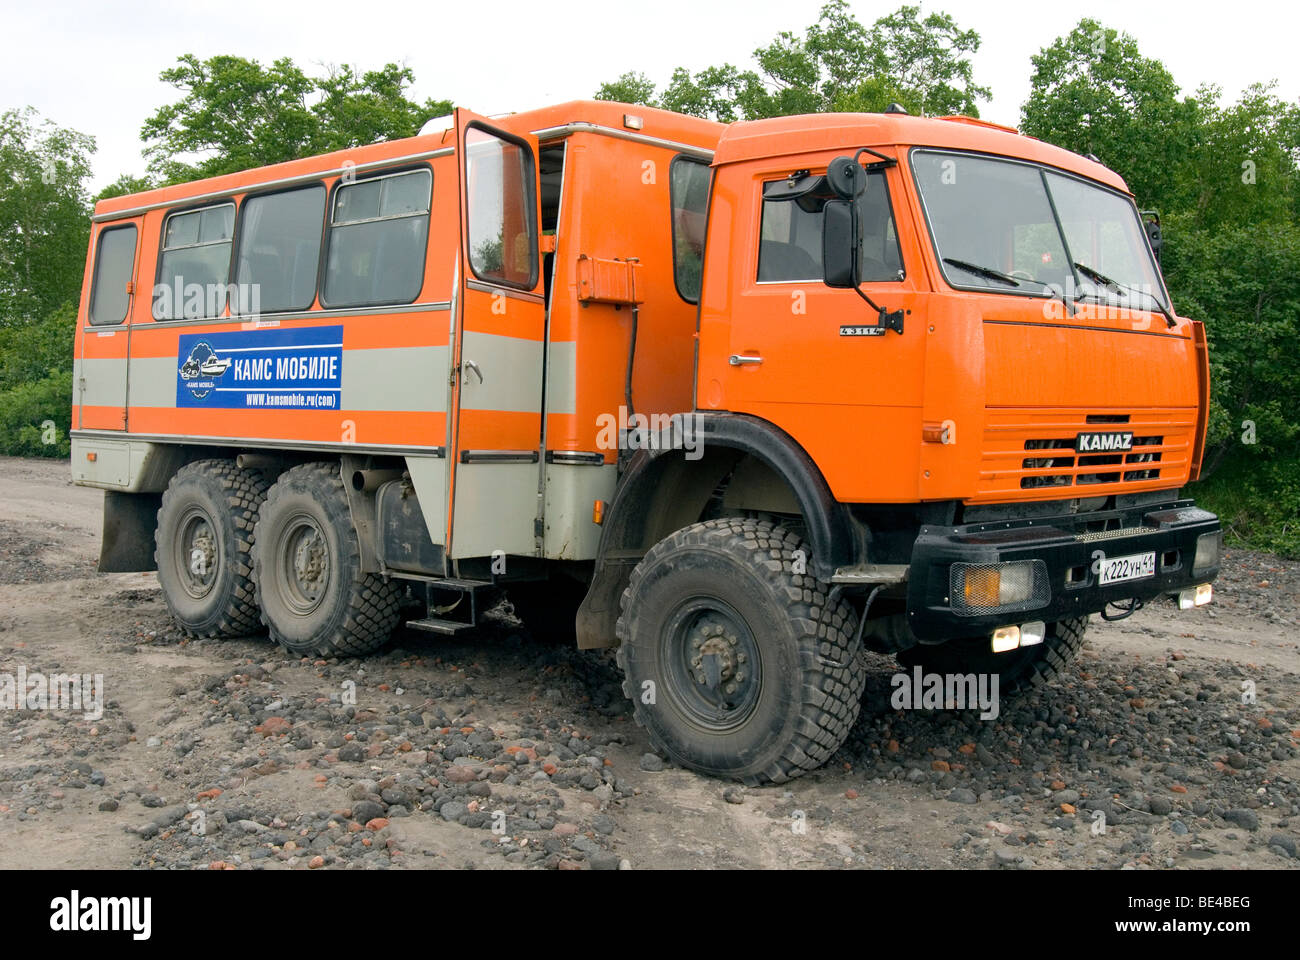 Kamaz 6-wheel drive truck, Kamchatka, Russian Far East - Stock Image